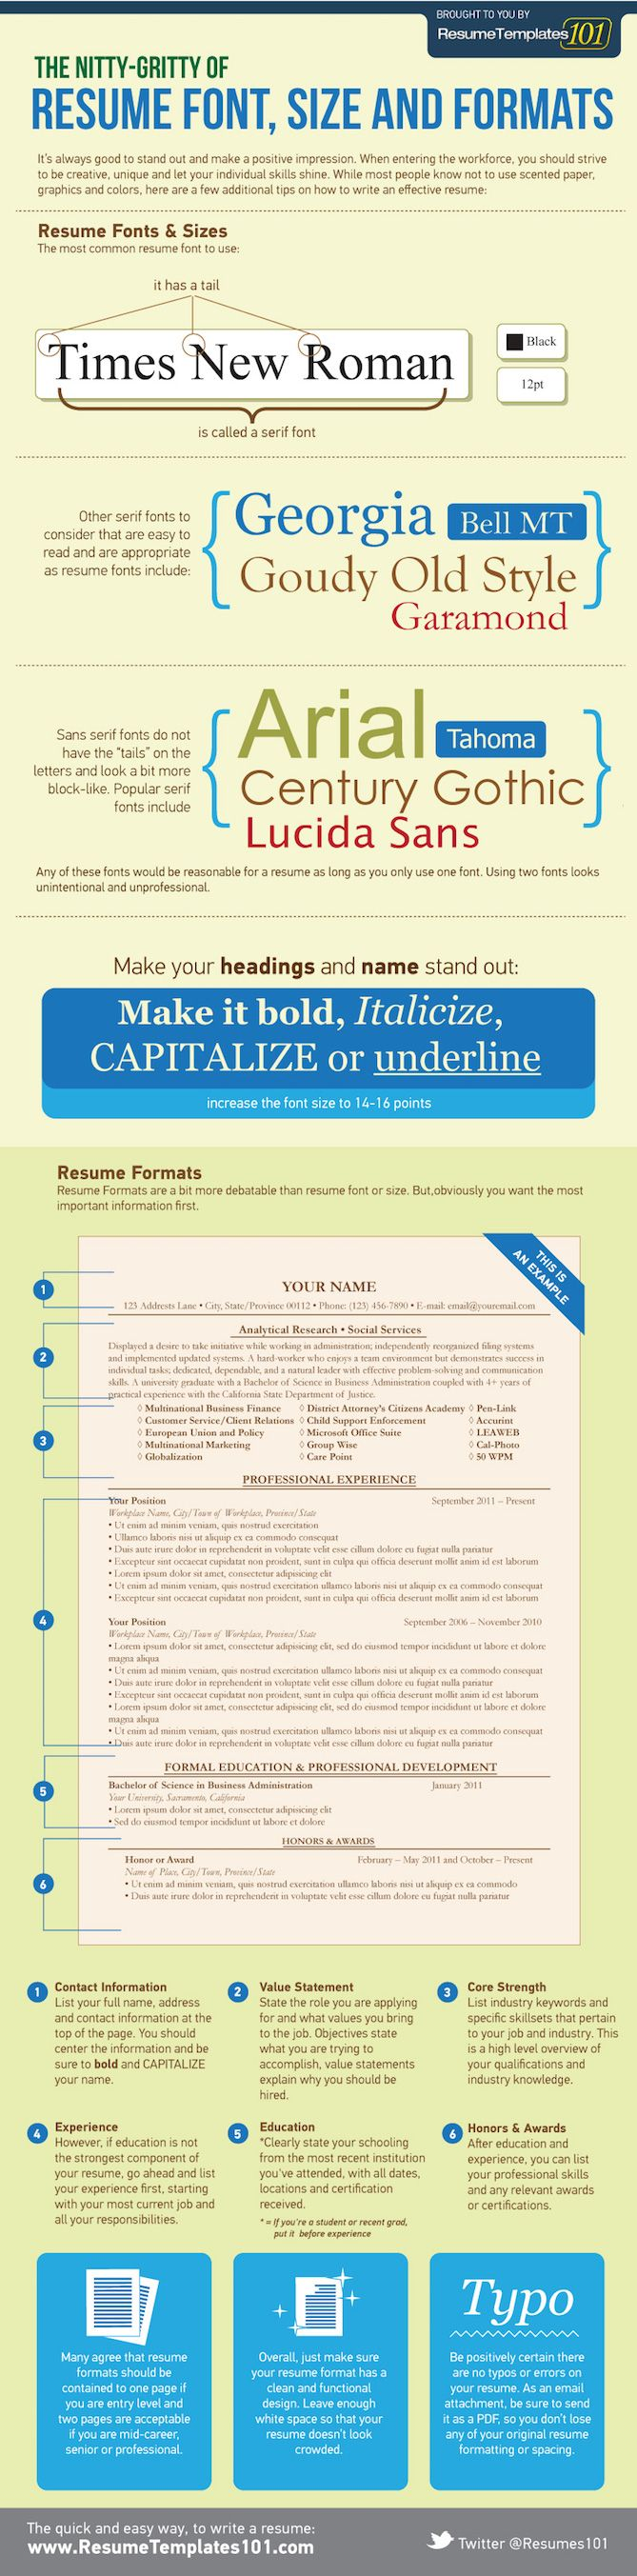 How to Properly Format Your #Resume [Infographic], via @HubSpot ...